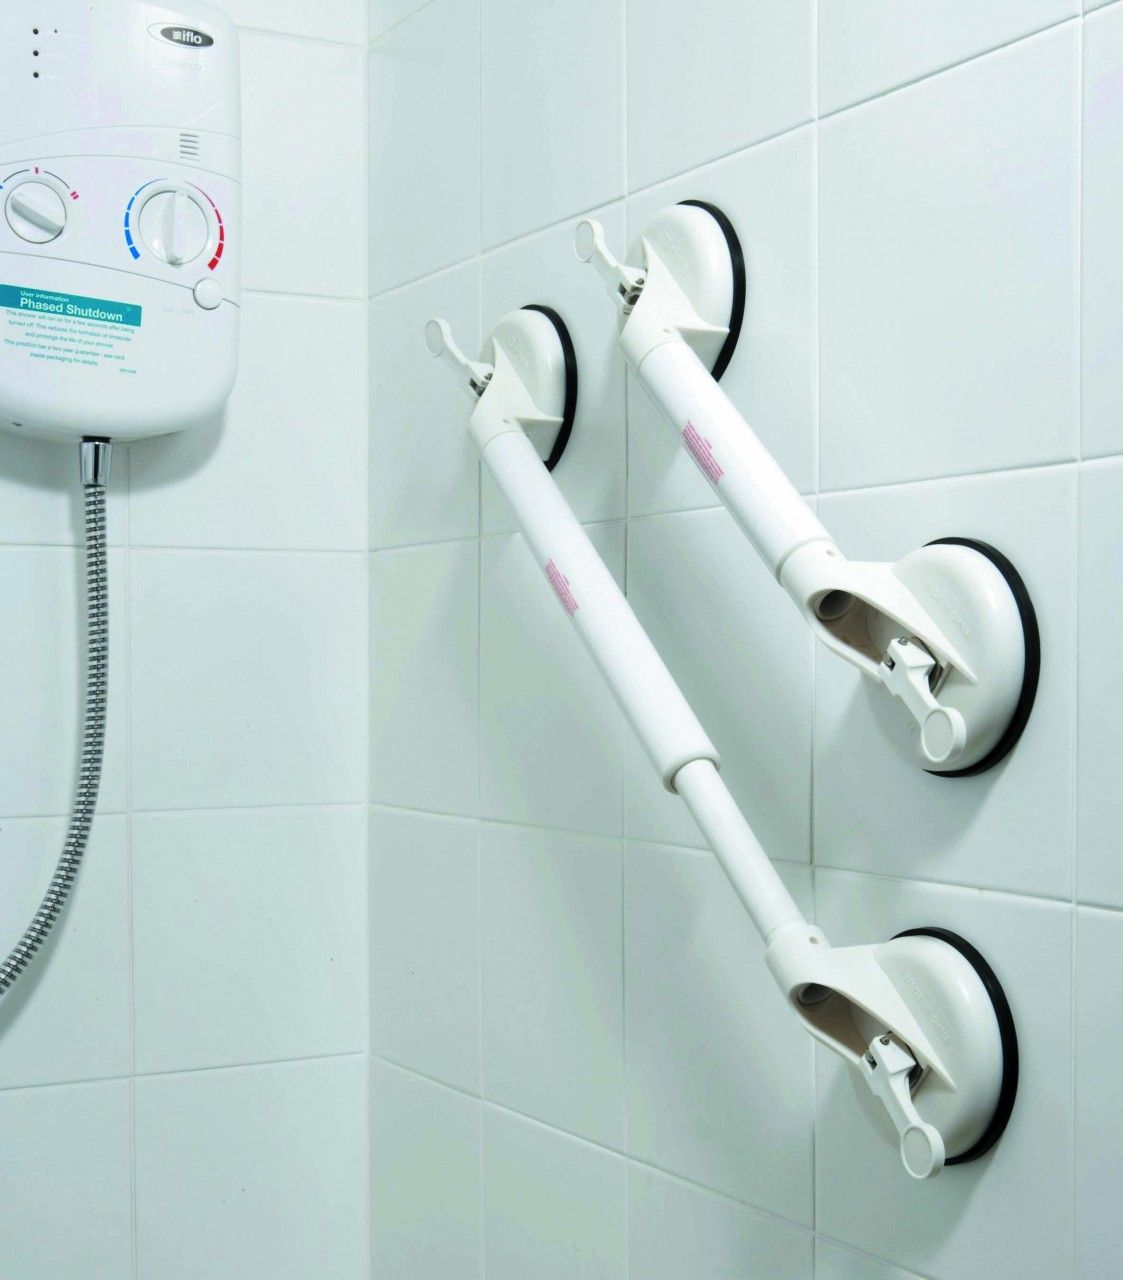 Bathroom Grab Bars Suction Cup  Bathroom Design 20172018 Best Bathroom Safety Bars Review